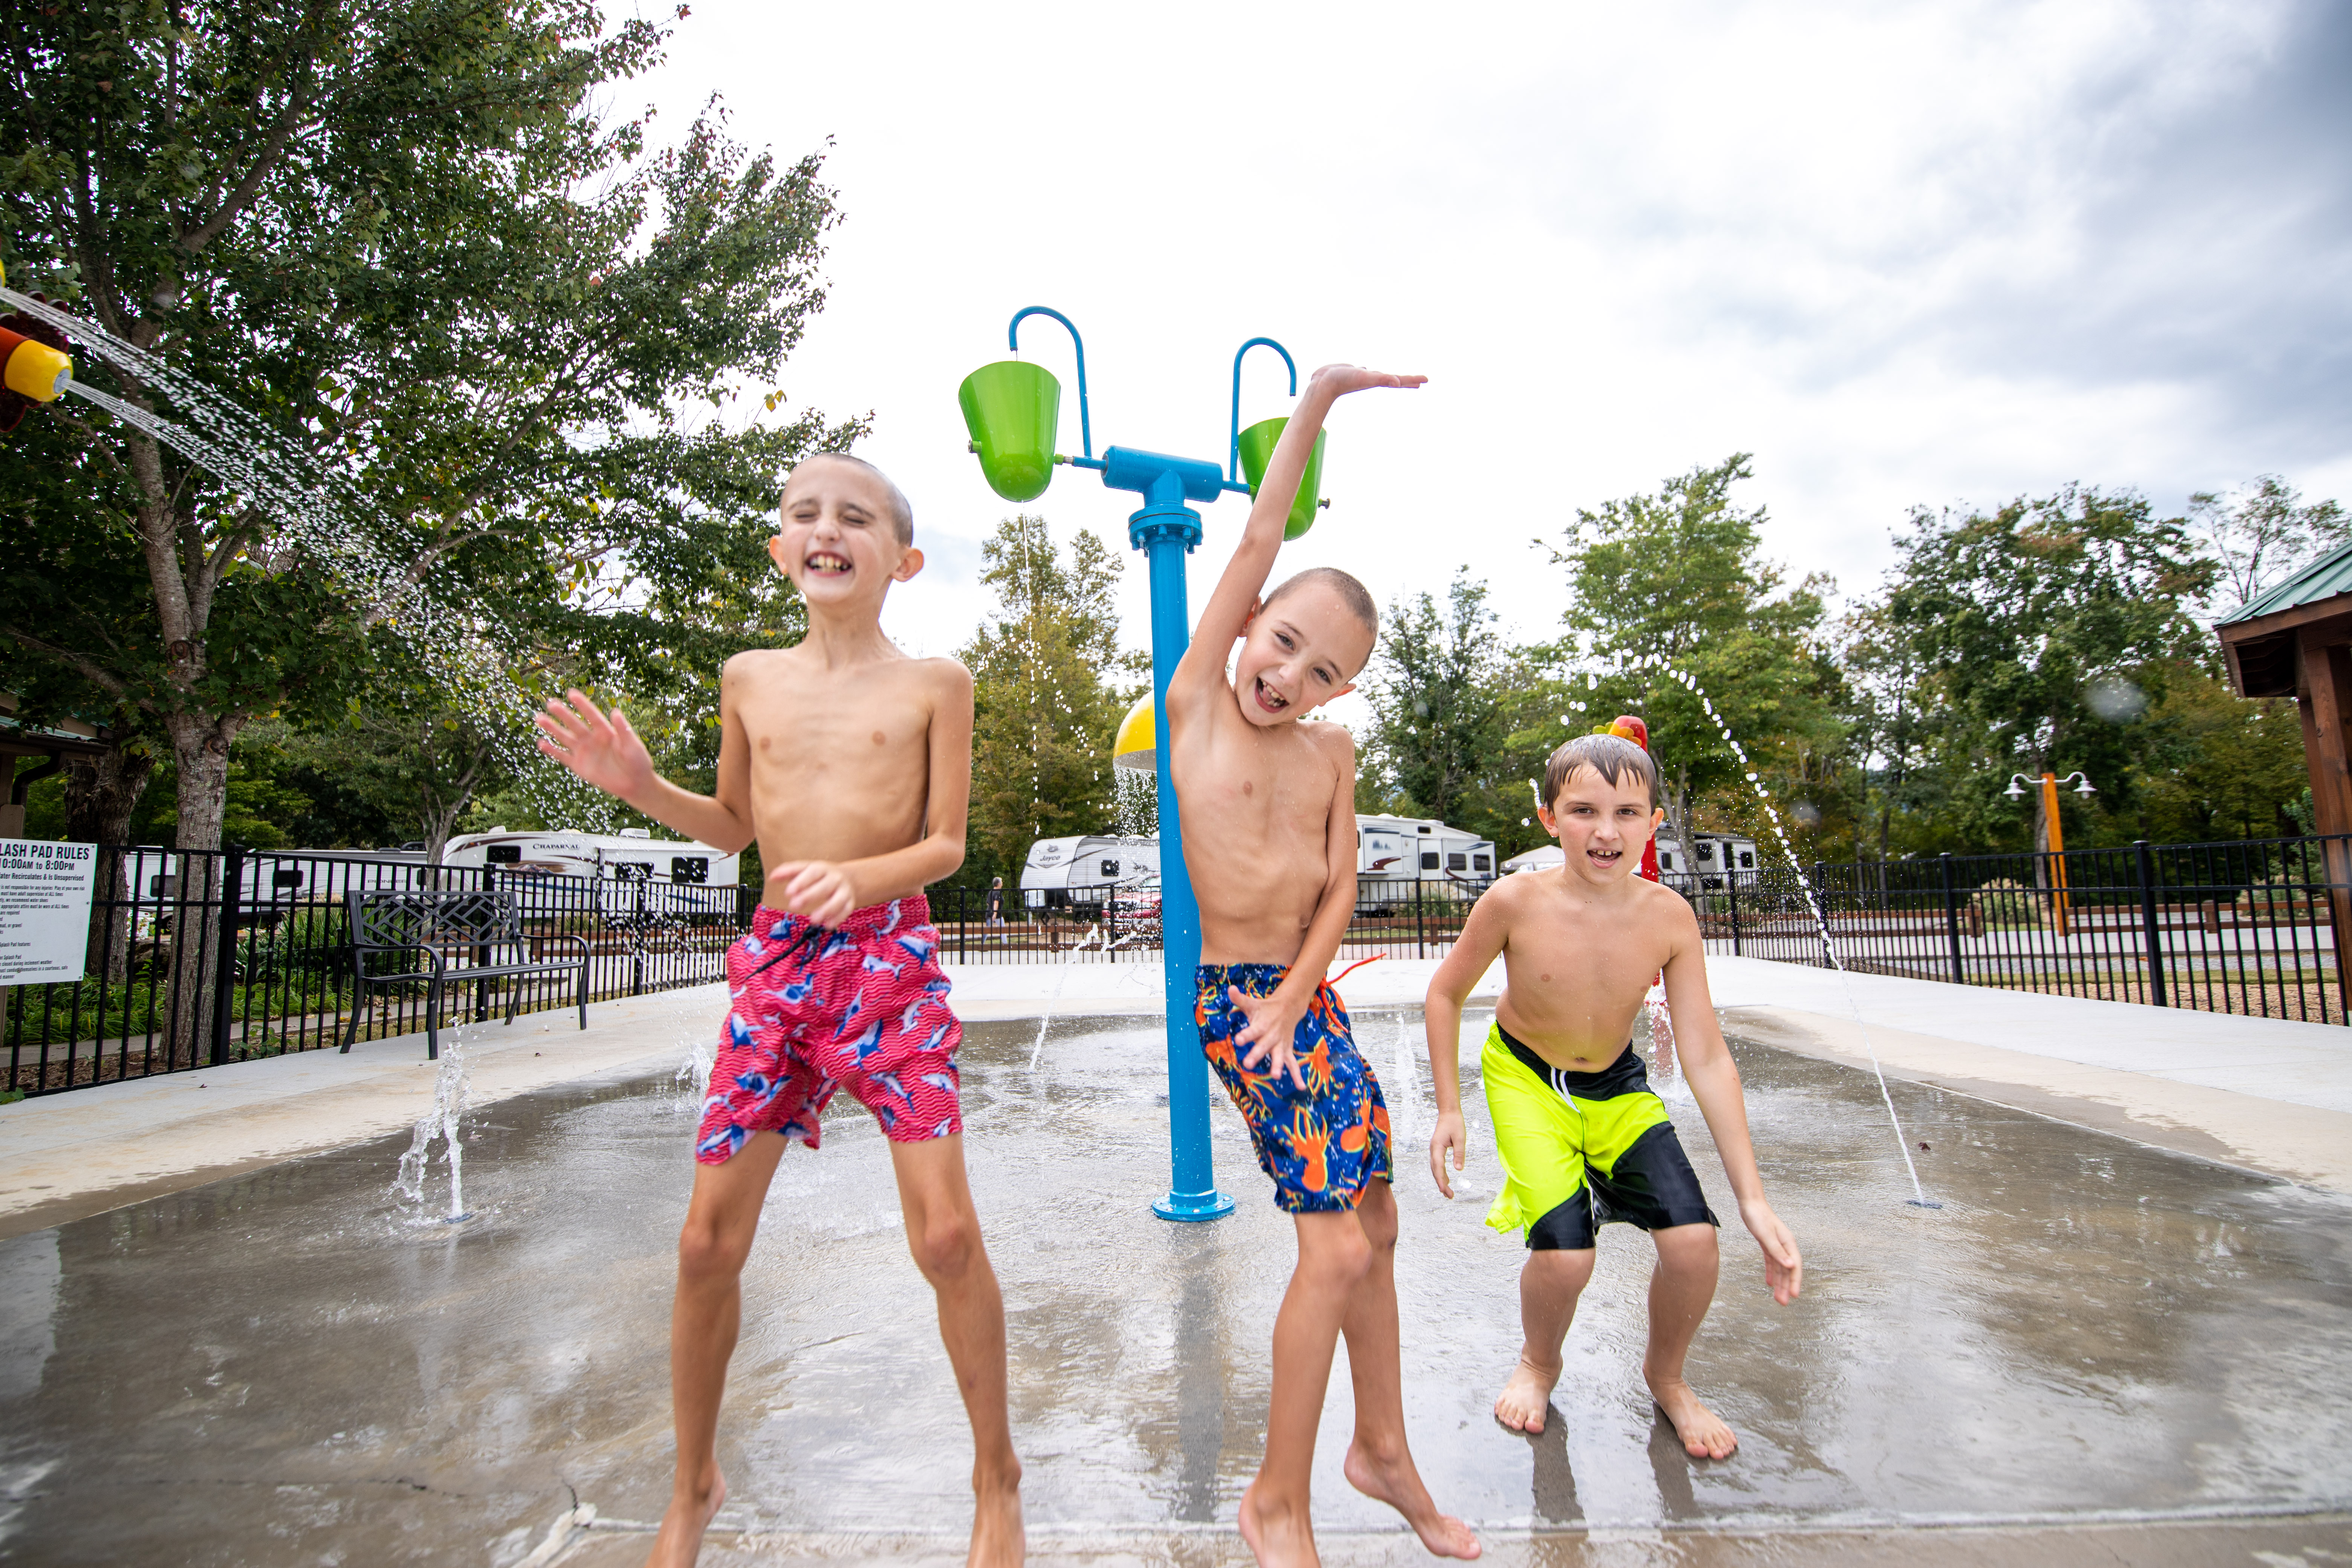 Great fun in our splash for kids of all ages!